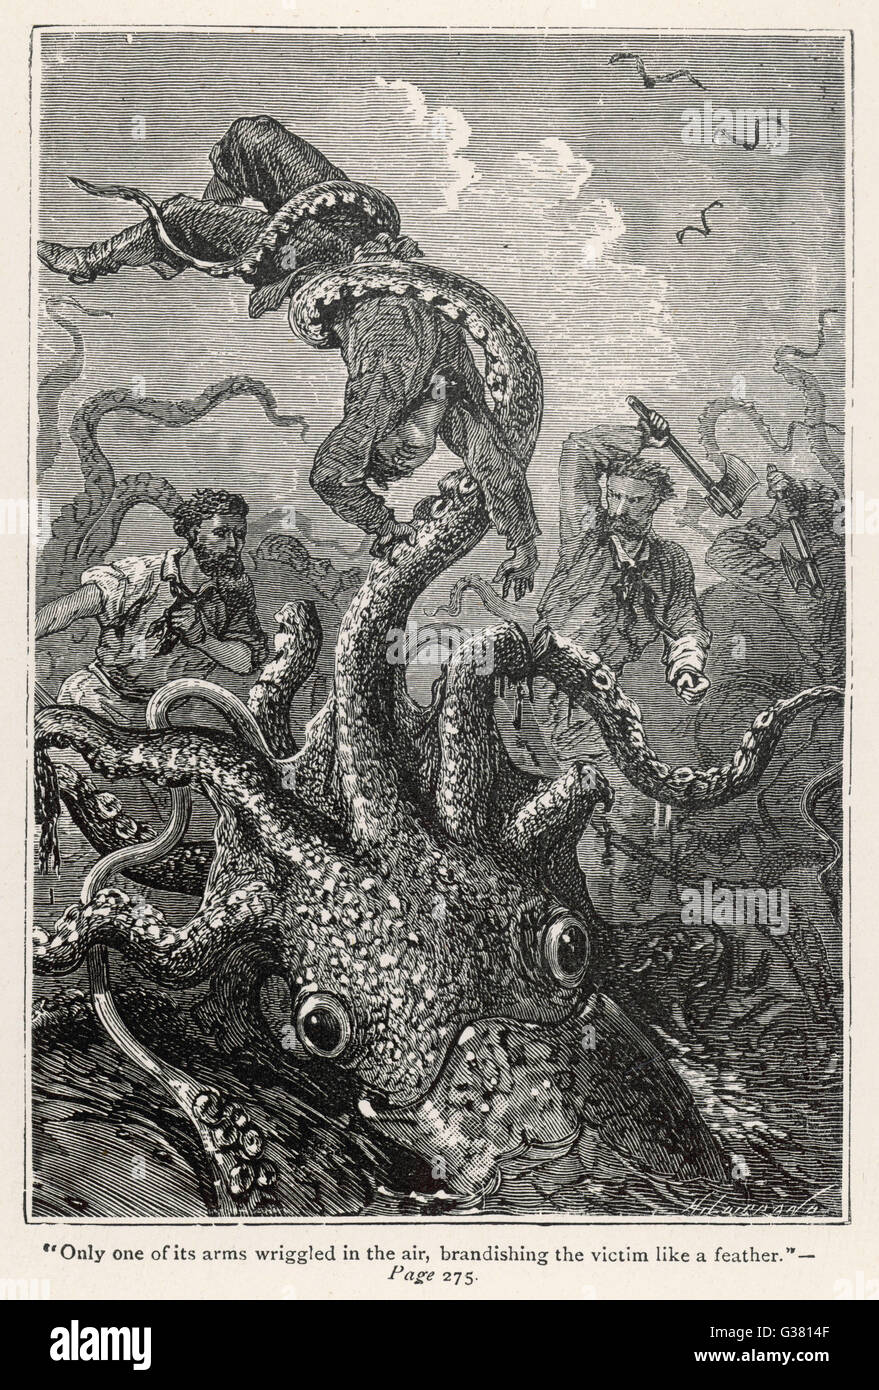 '20,000 LIEUES SOUS LES MERS' [20 000 leagues under the sea]  The squid claims a victim       Date: 1870 - Stock Image